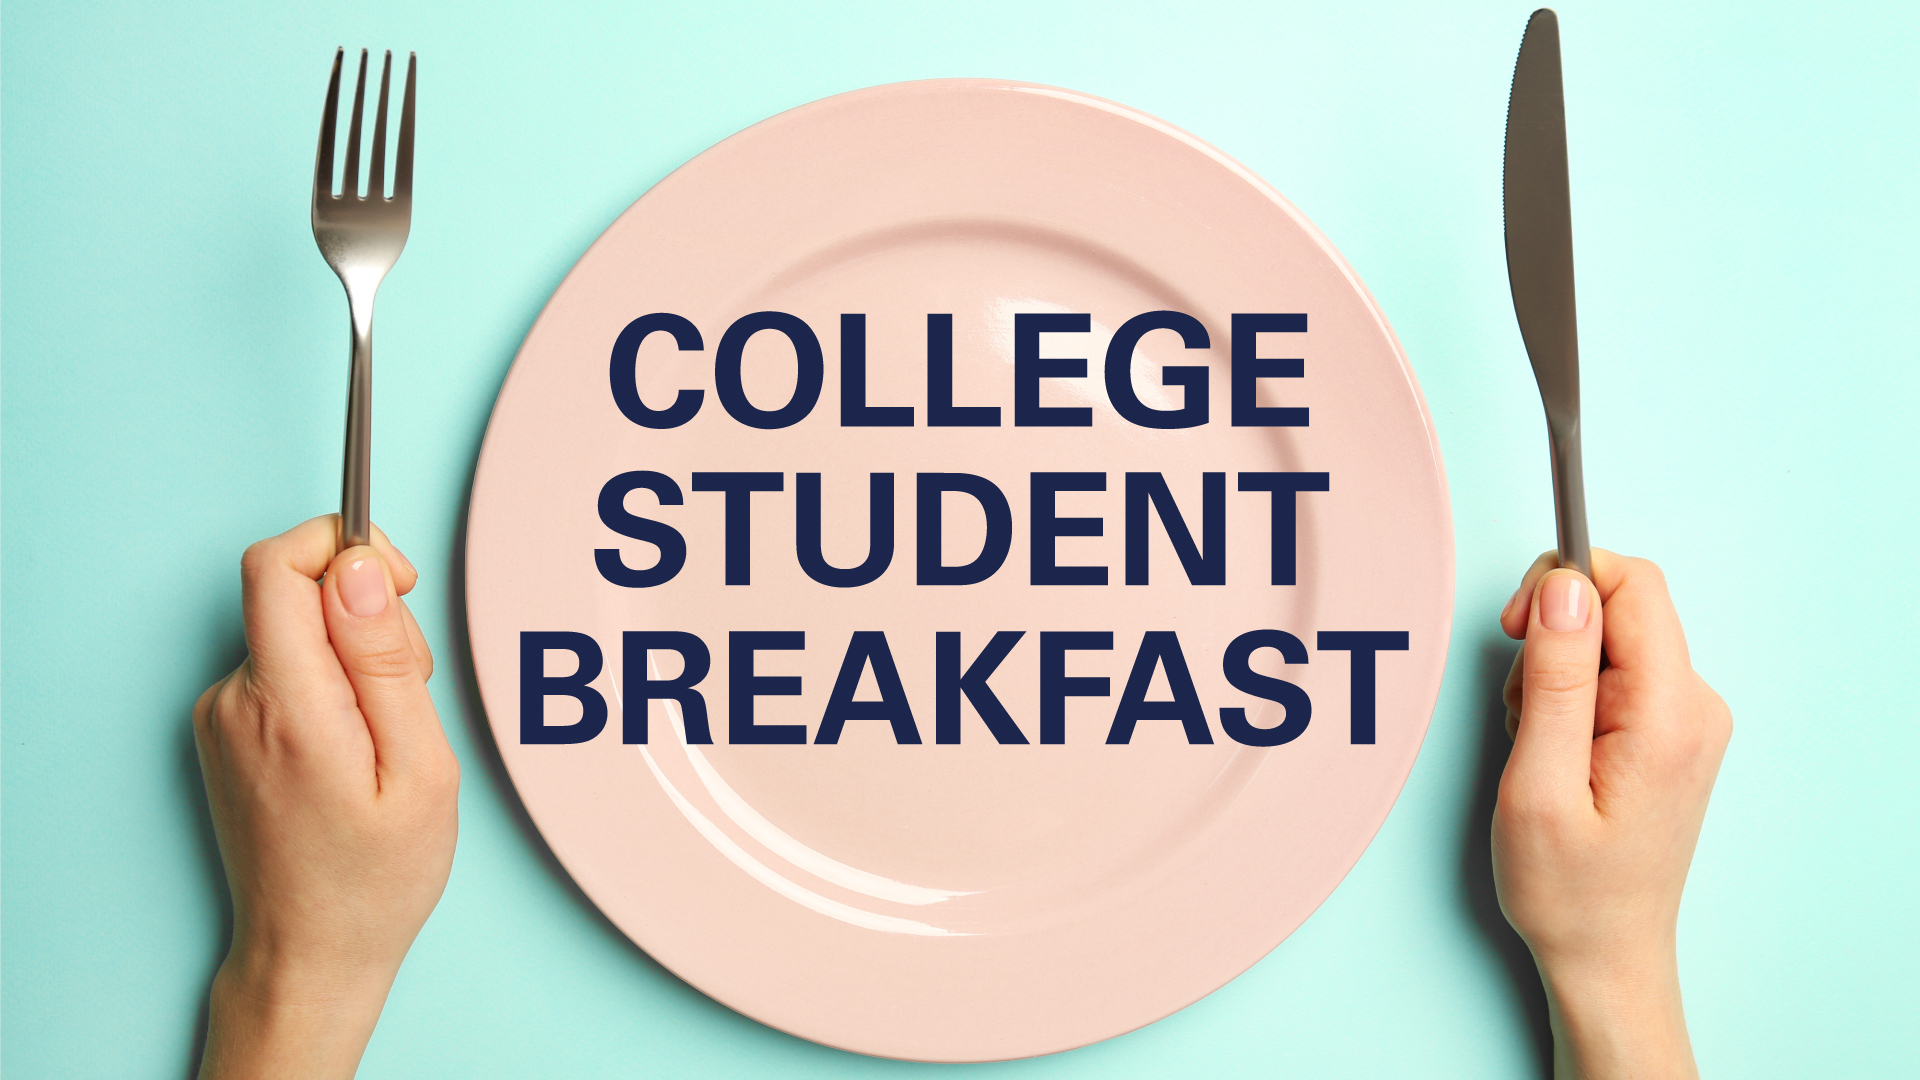 Logan-College-Student-Breakfast.jpg